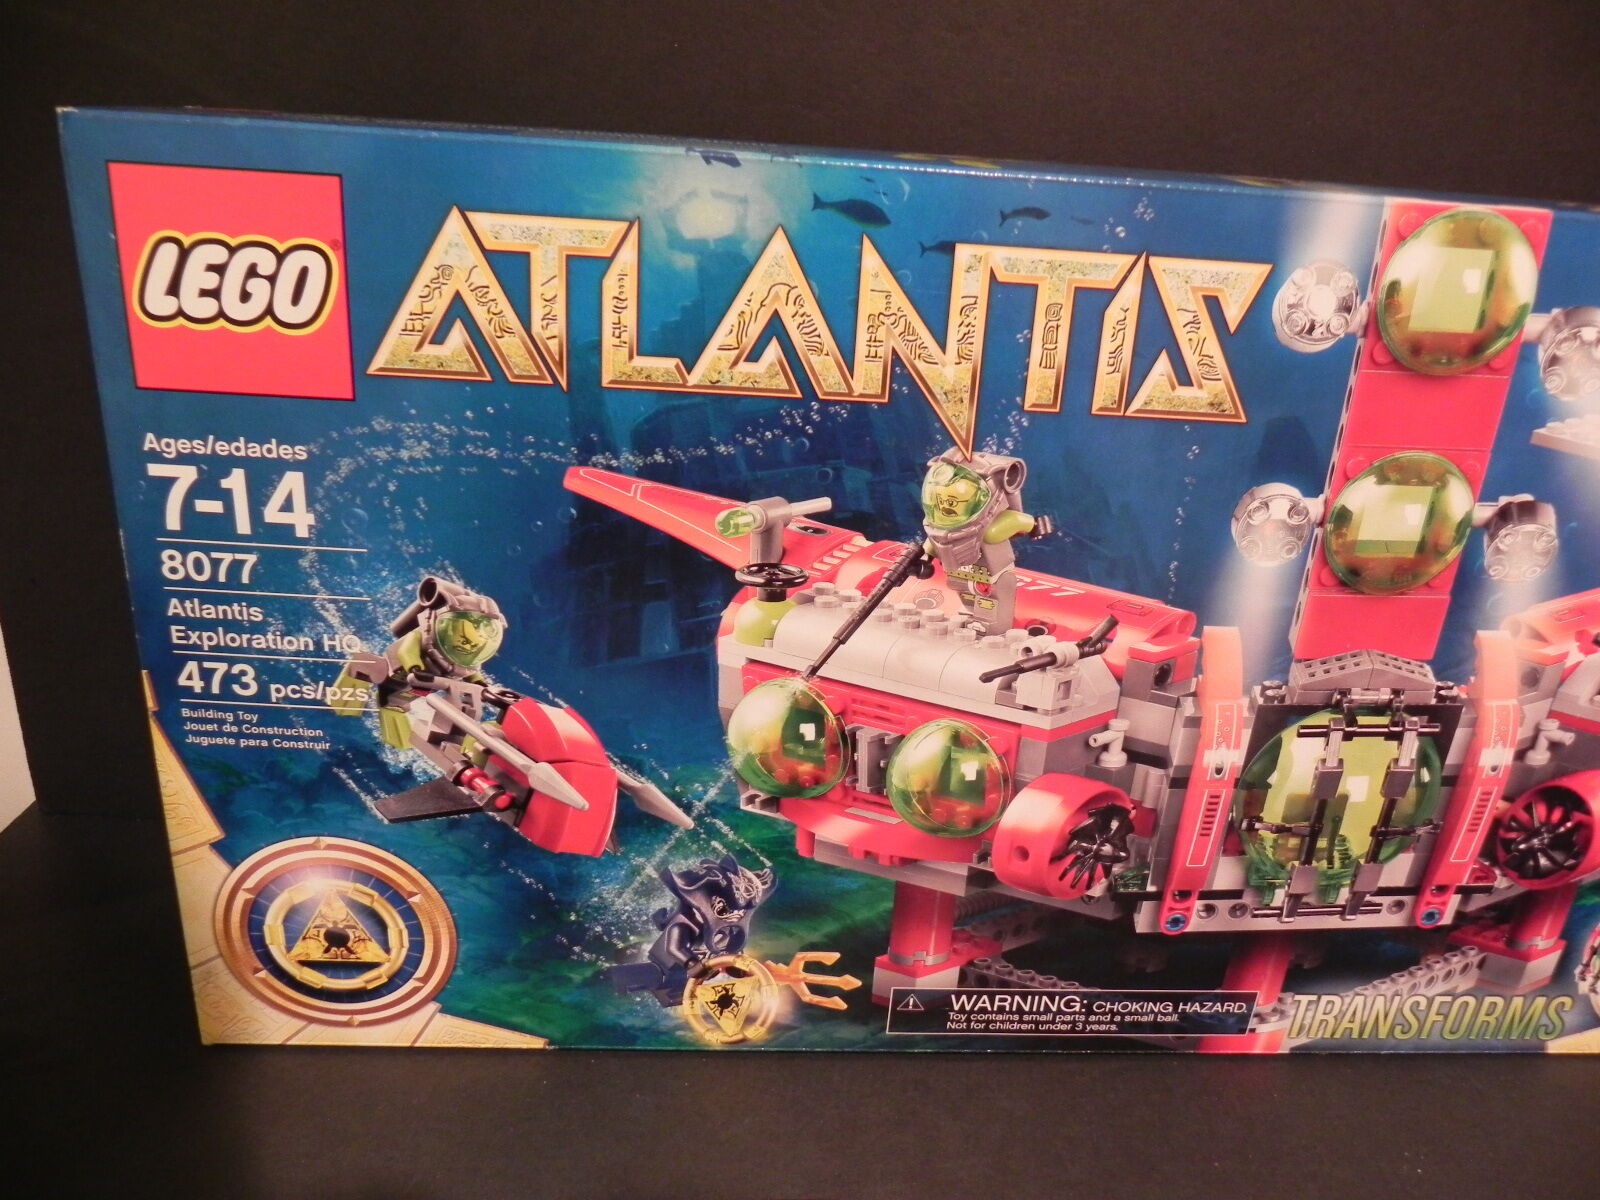 LEGO 8077 ATLANTIS EXPLORATION HEADQUARTERS 473 Pieces NEW in Sealed Box - WOW